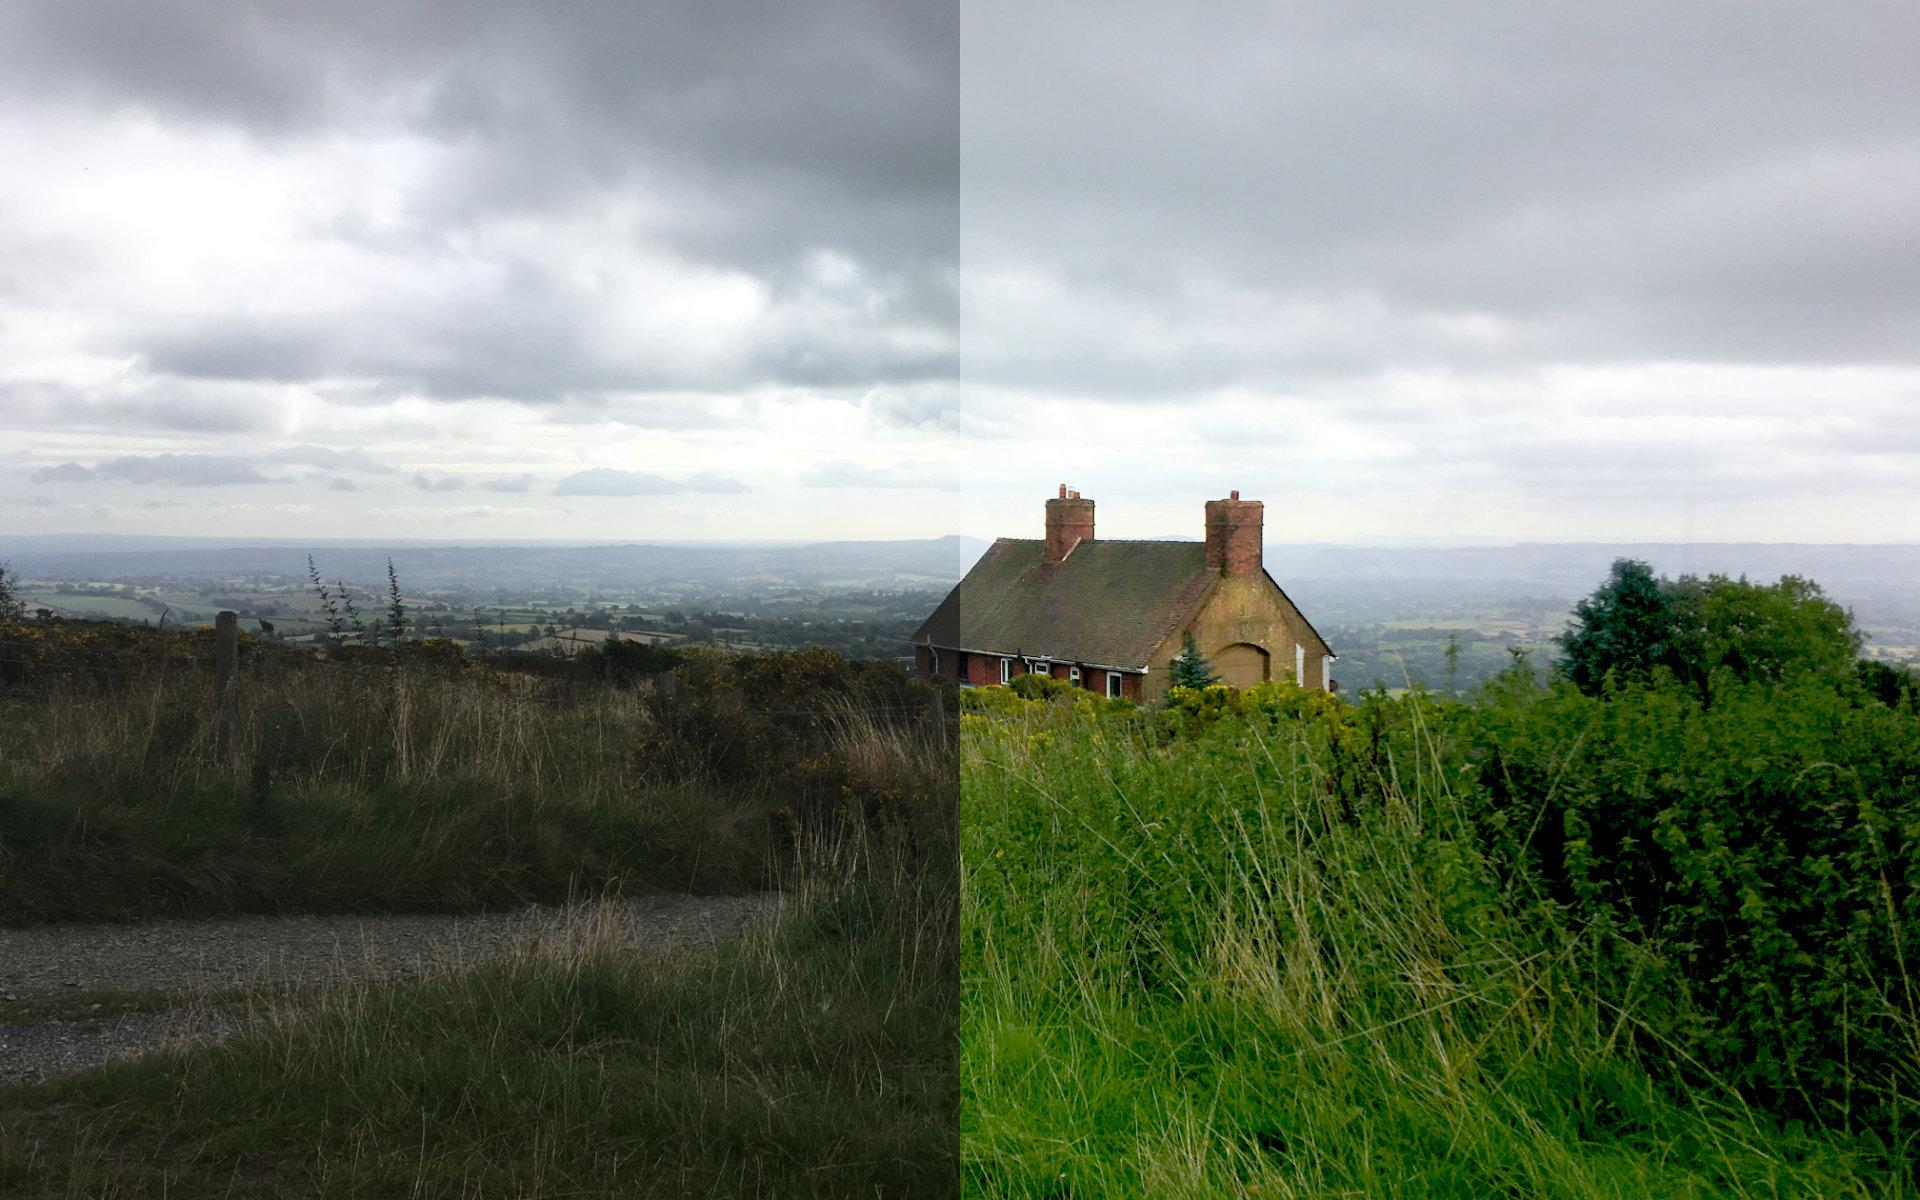 House on a Hill – Before & After